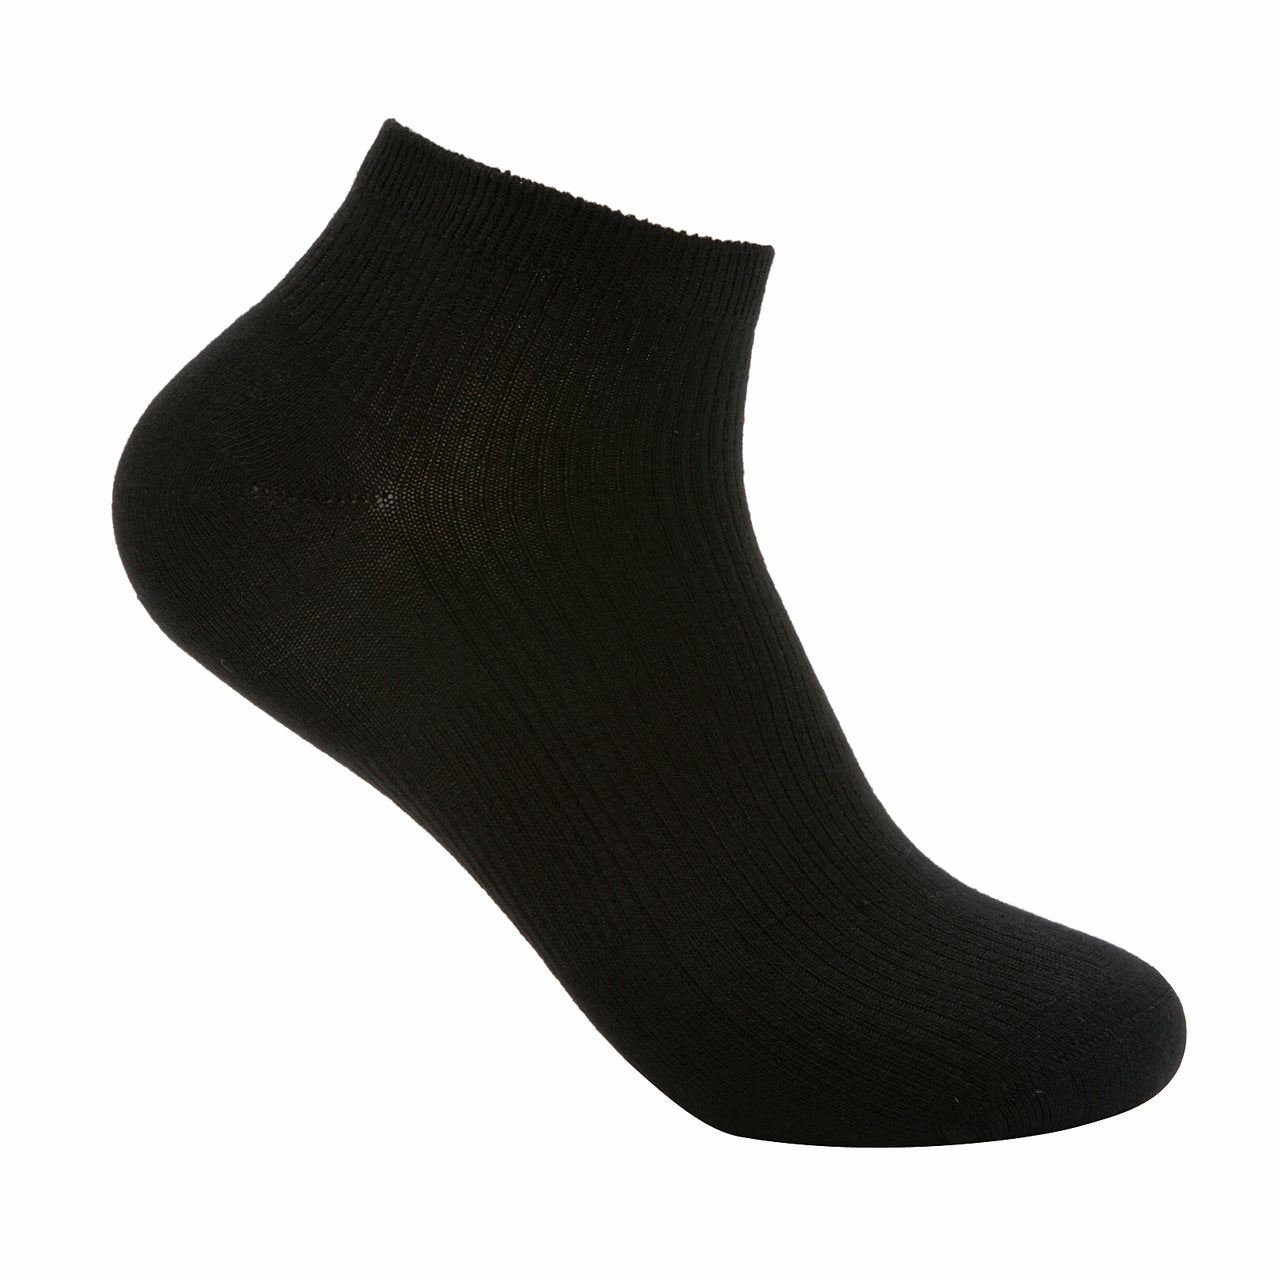 Hiltech Ankle Socks 2 Pack - Black/White